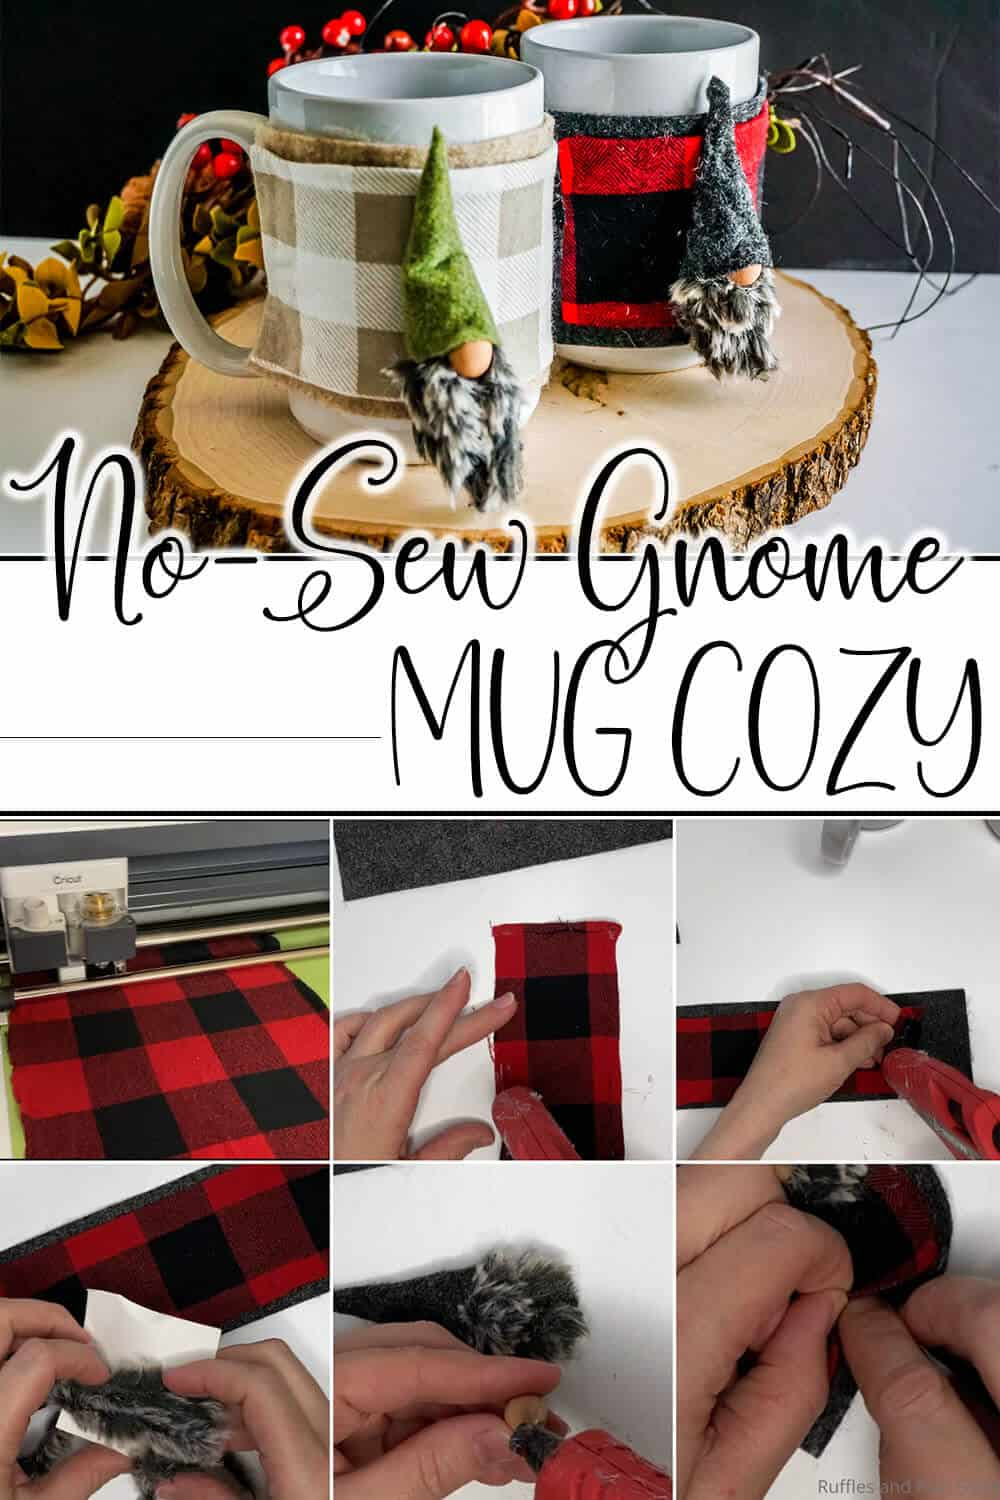 photo collage of diy gift idea of a mug wrap with text which reads no-sew gnome mug cozy